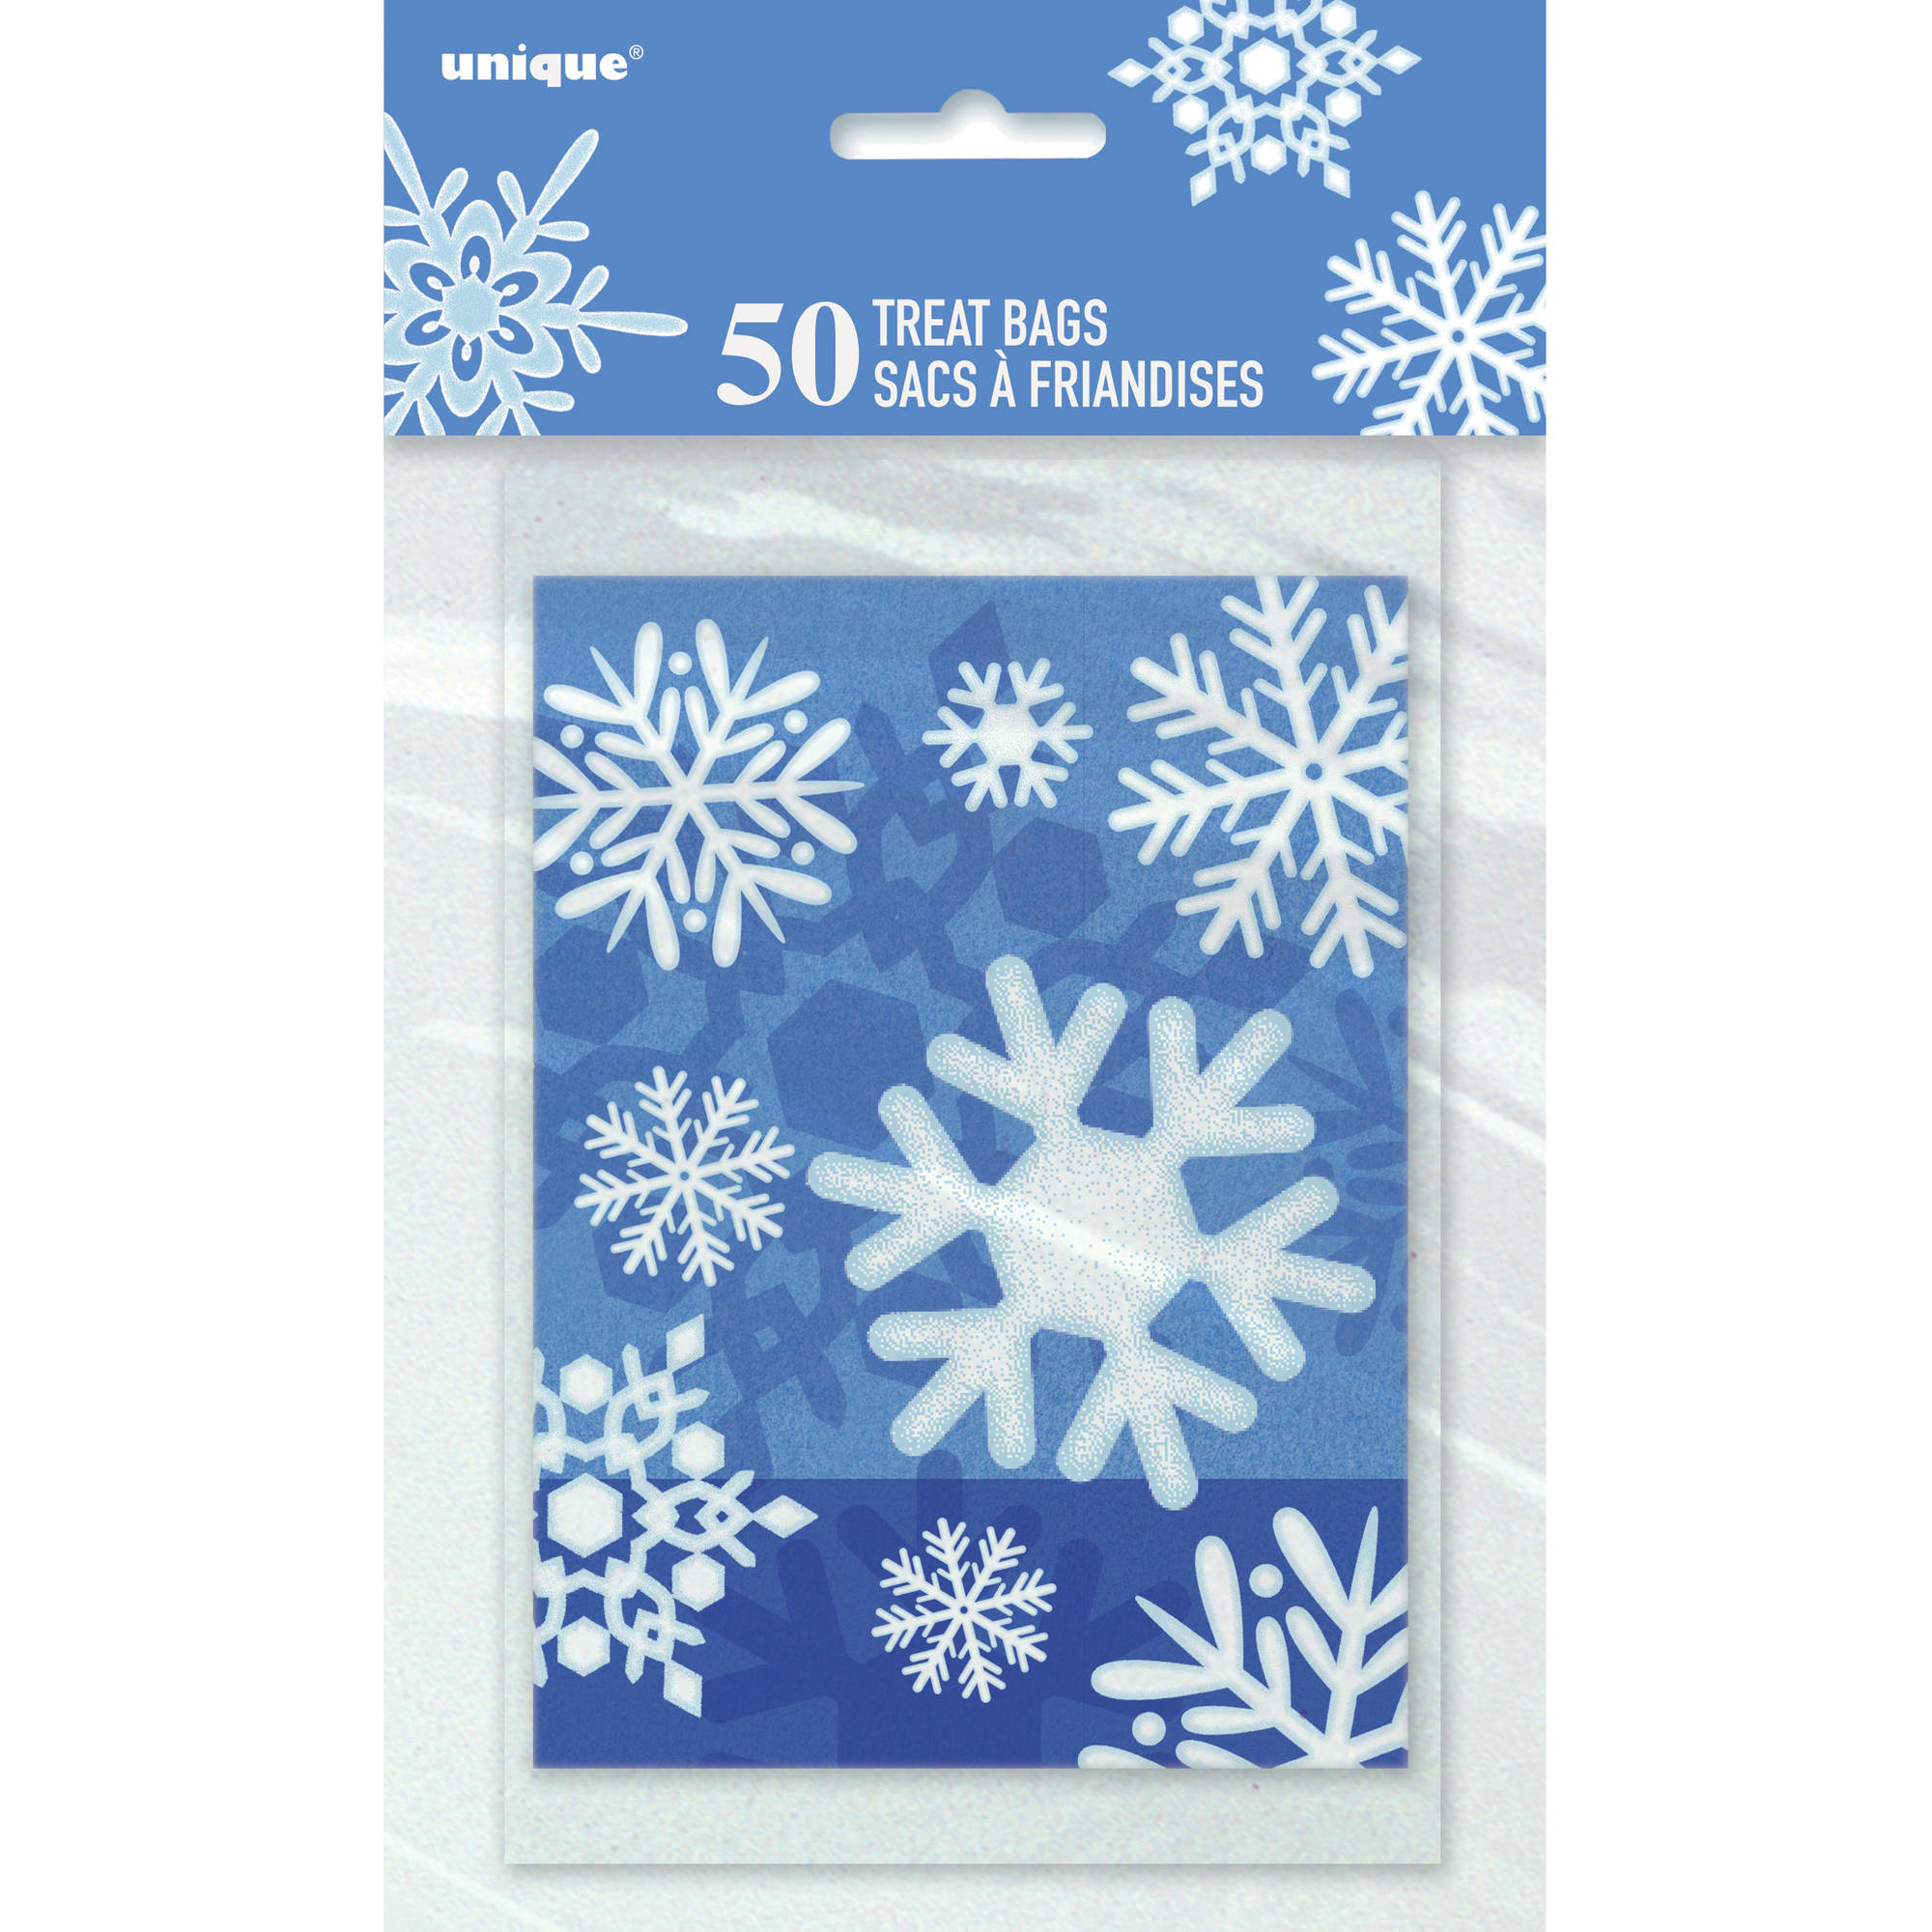 Treat bags winter snowflake holiday treat bags 50 count negle Image collections